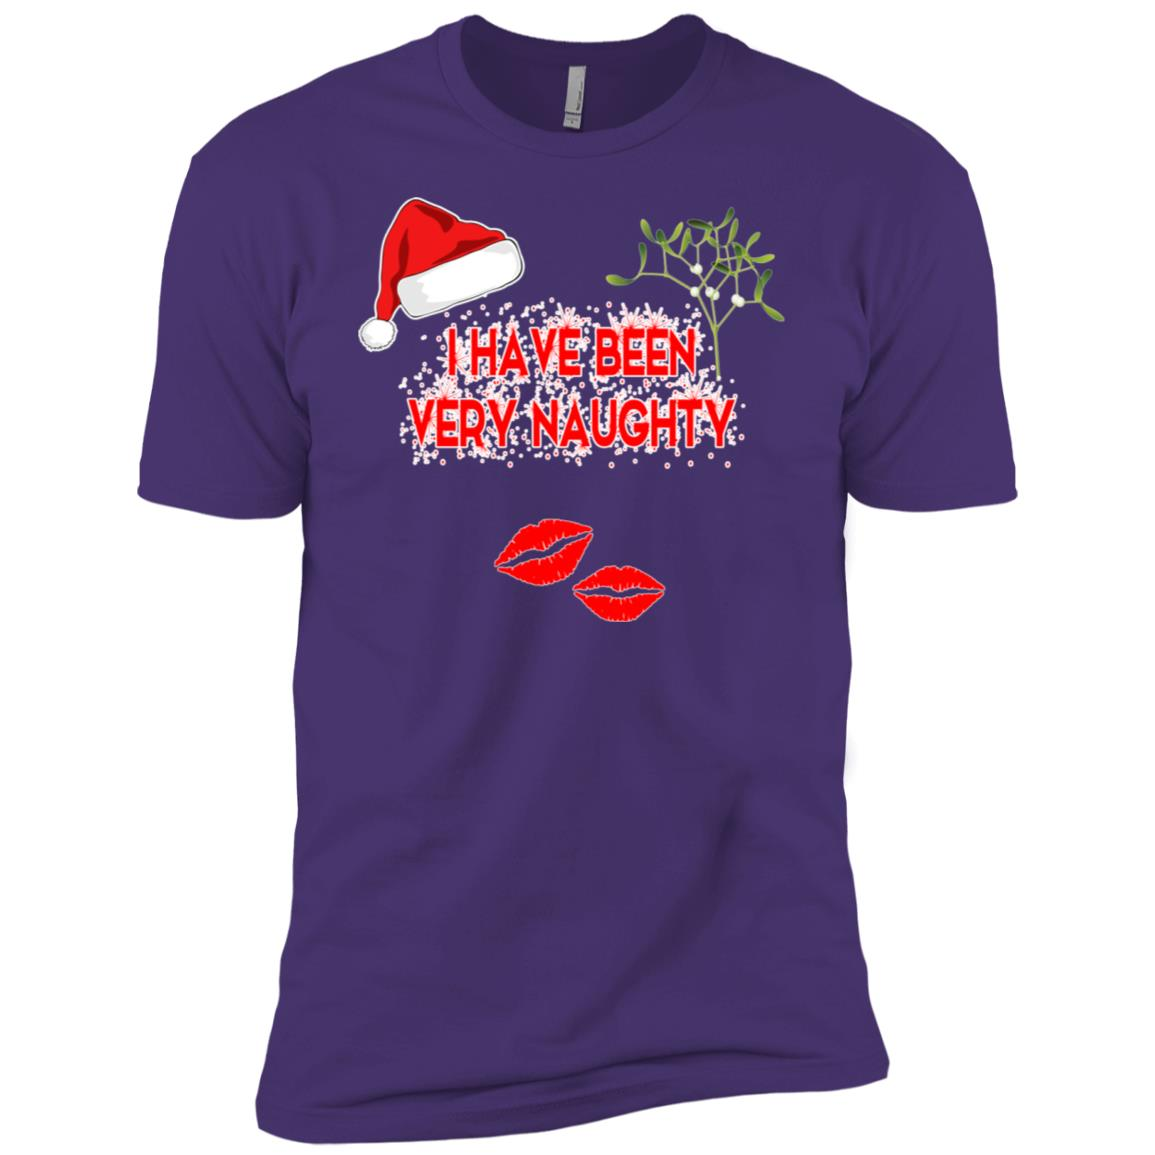 I Have Been Very Naughty fun joke Christmas Tee Men Short Sleeve T-Shirt